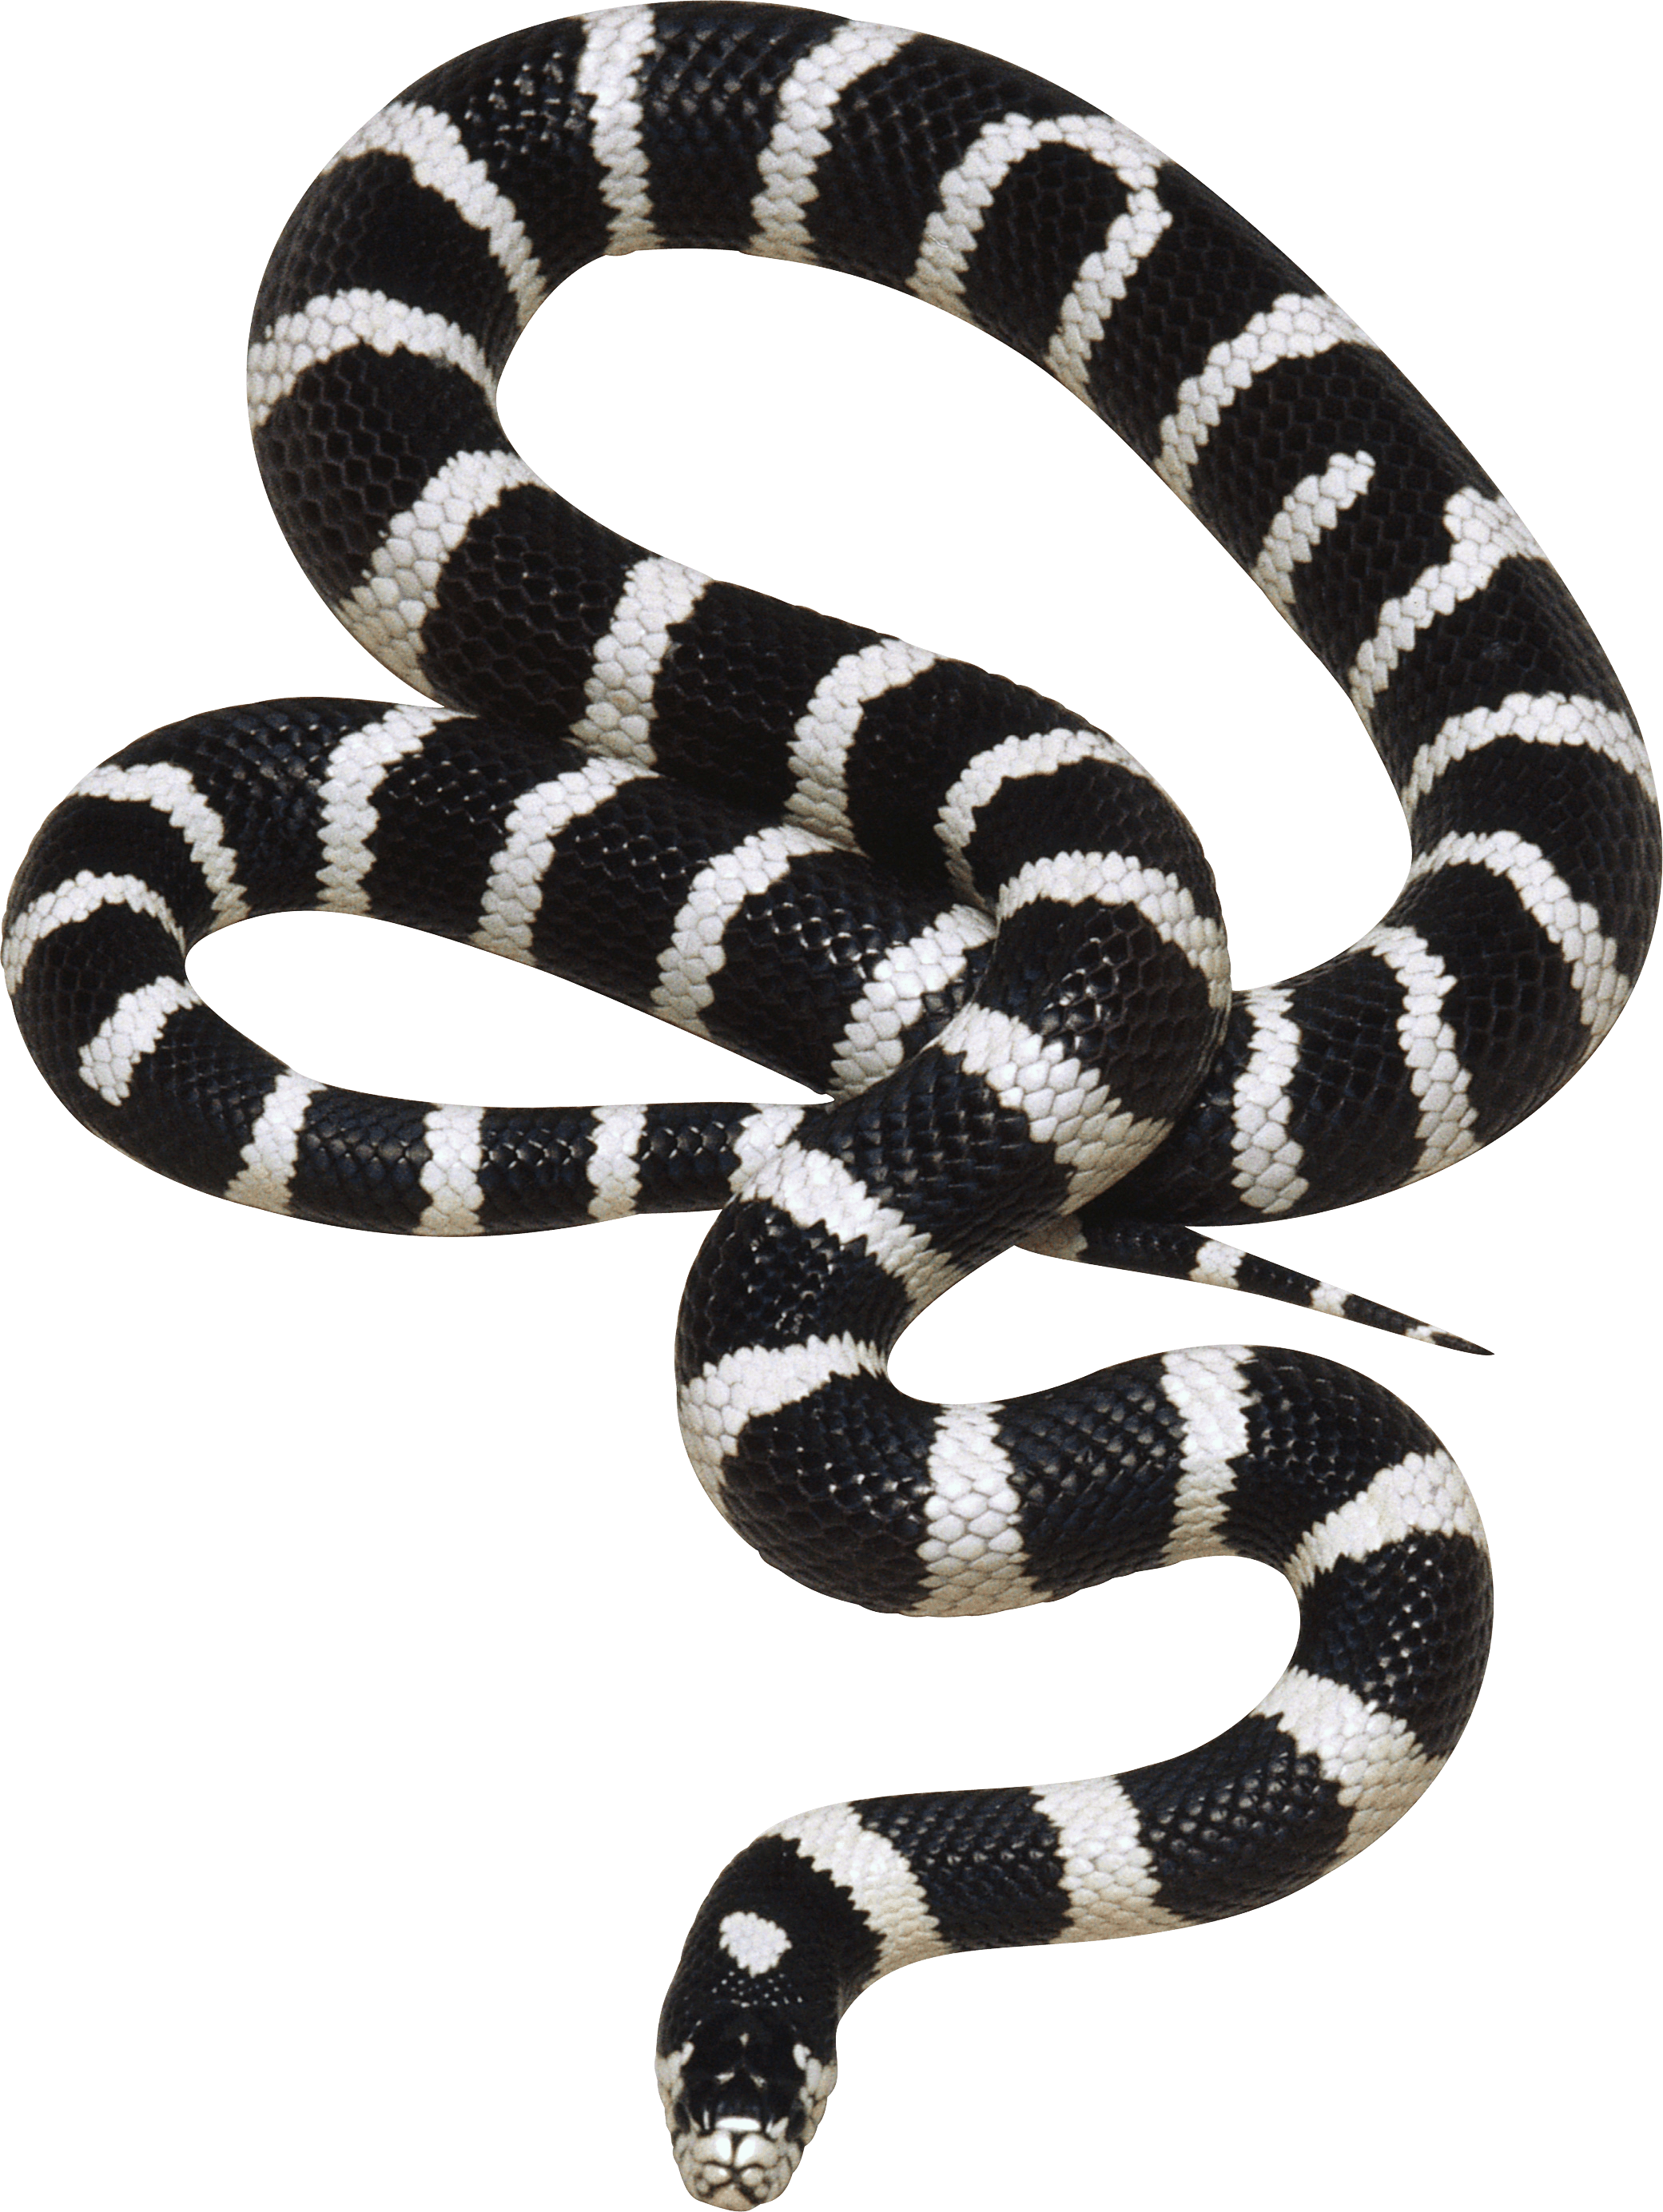 Black and White Snake PNG Image.